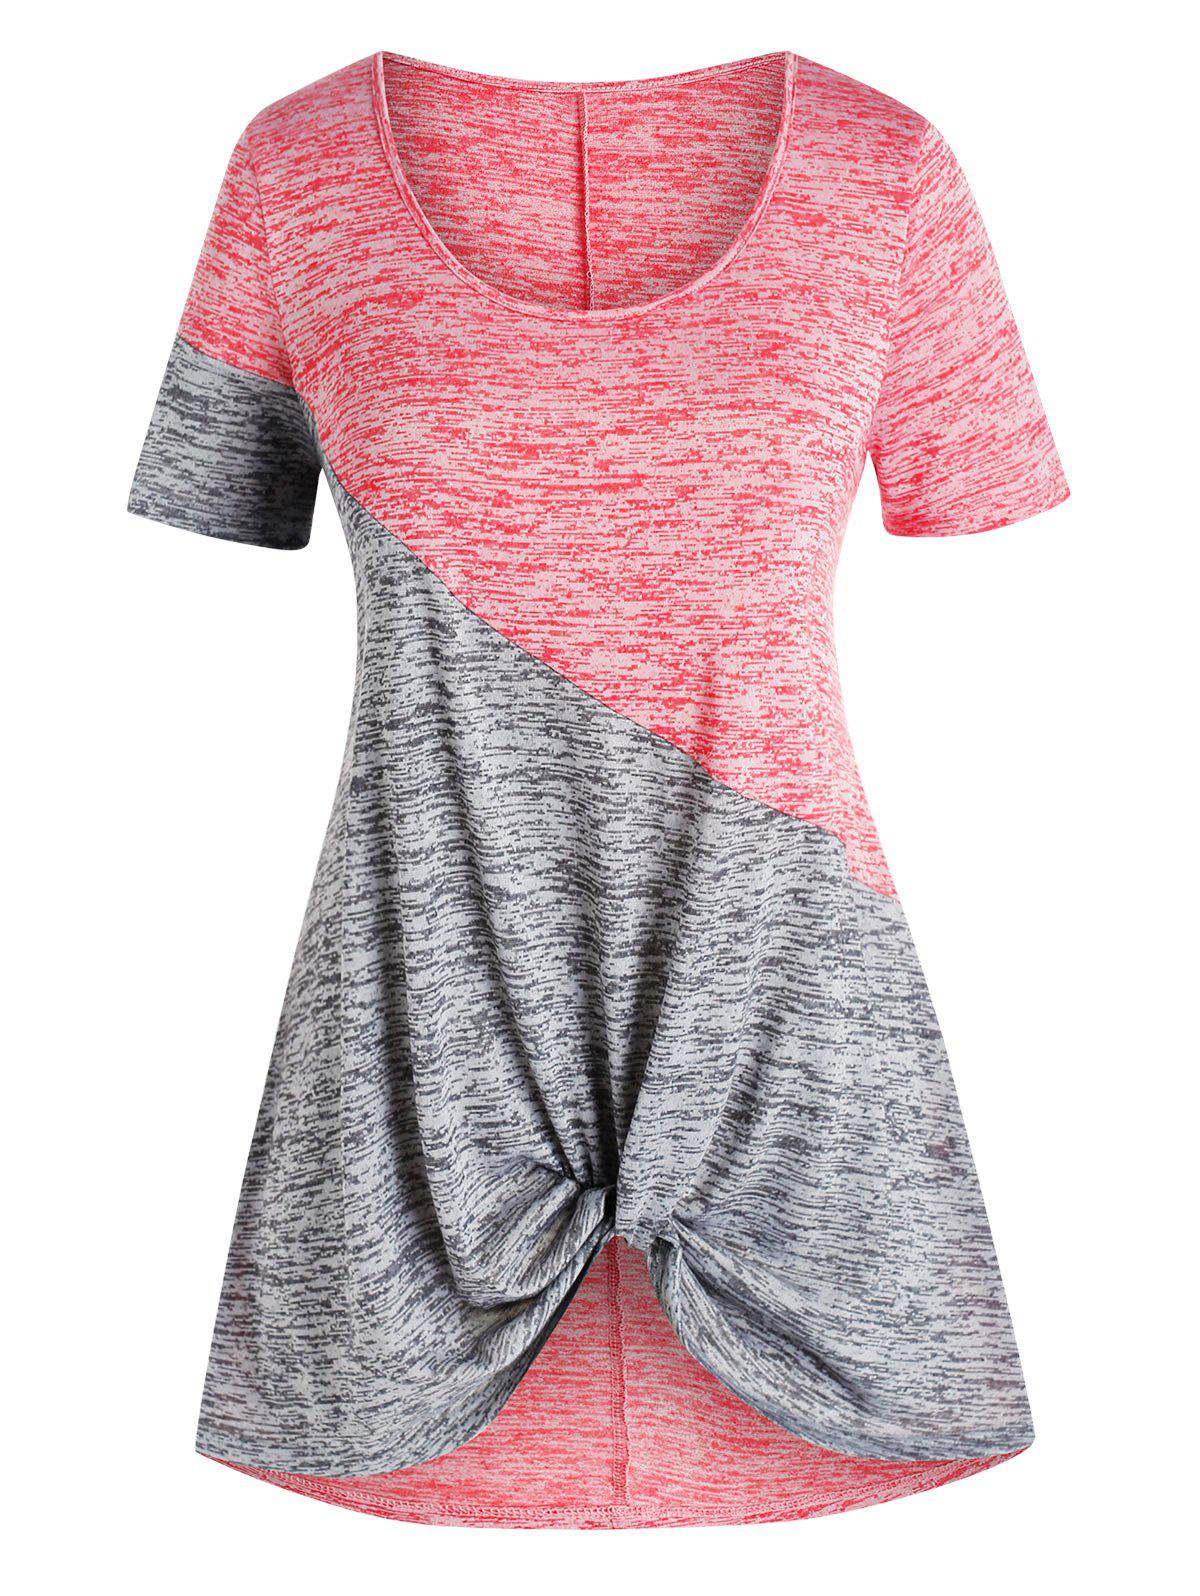 Plus Size Front Twist Two Tone Tee - multicolor 5X